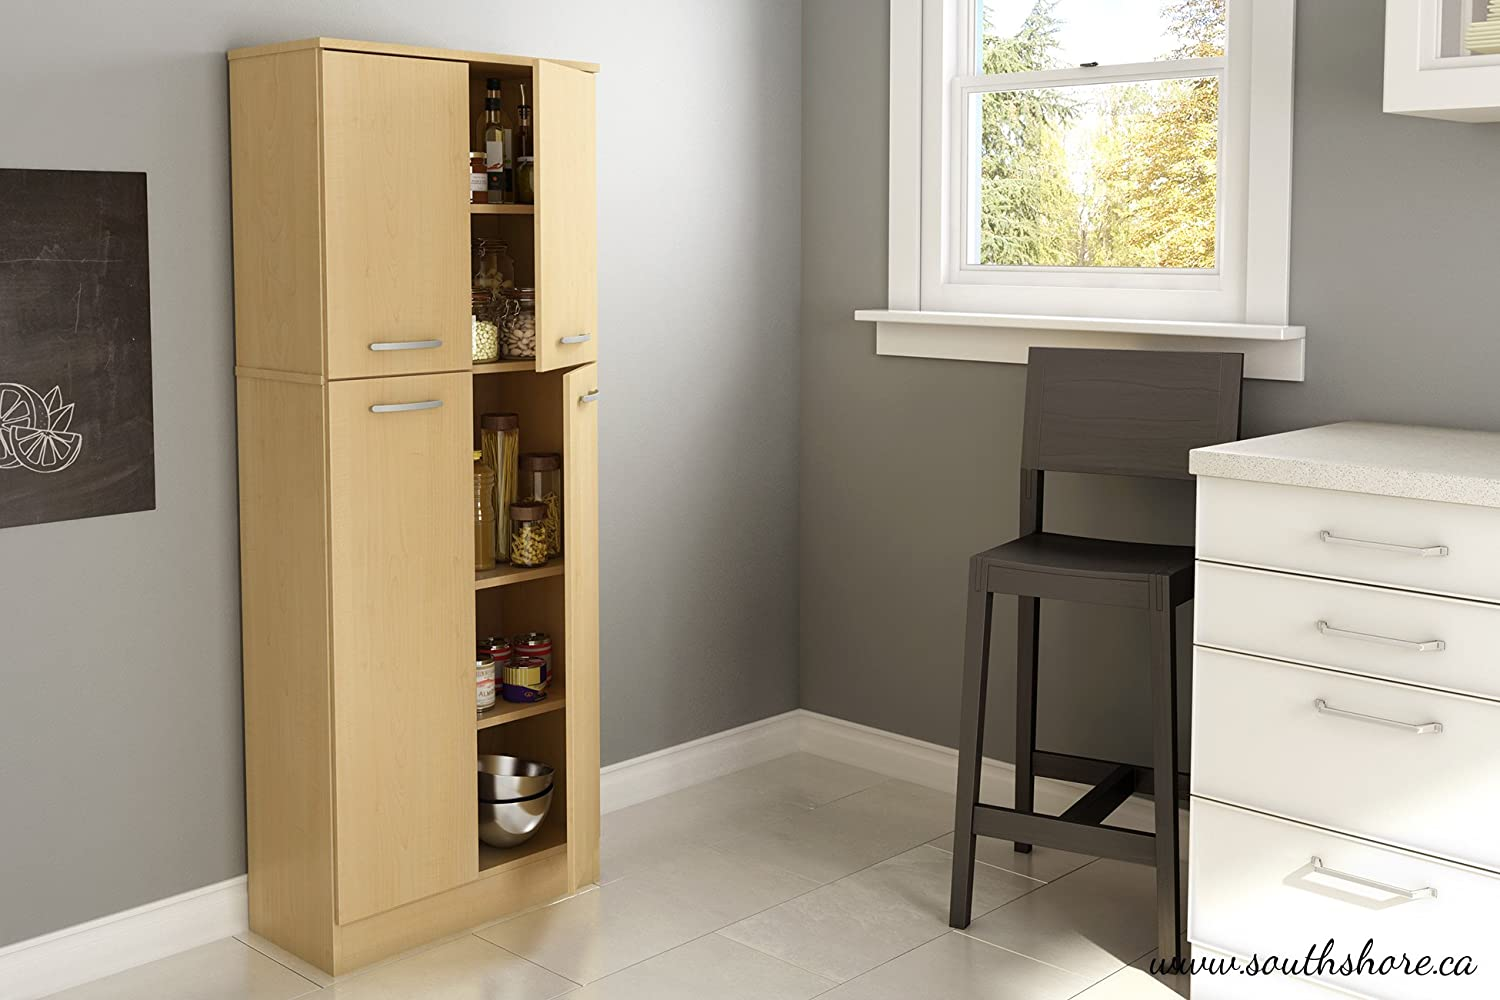 amazoncom south shore 4 door storage pantry with adjustable shelves natural maple home kitchen - Kitchen Storage Pantry